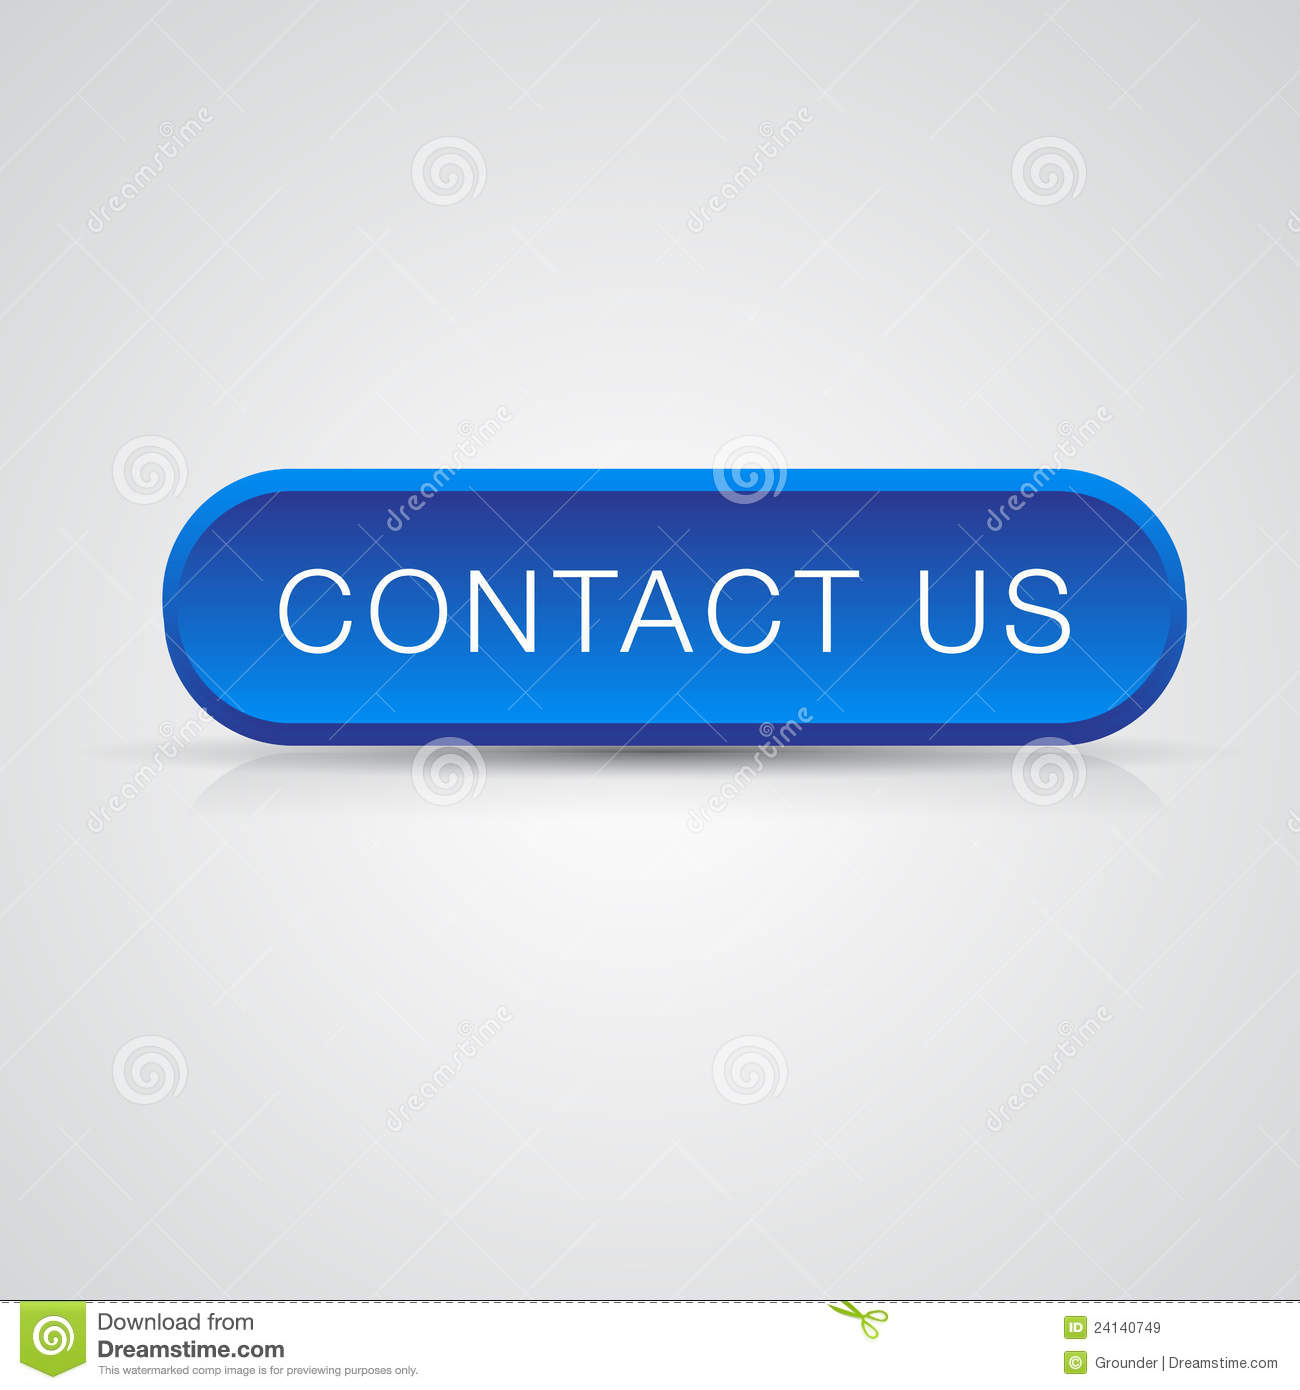 Contact Us: Blue Button Contact Us Royalty Free Stock Images